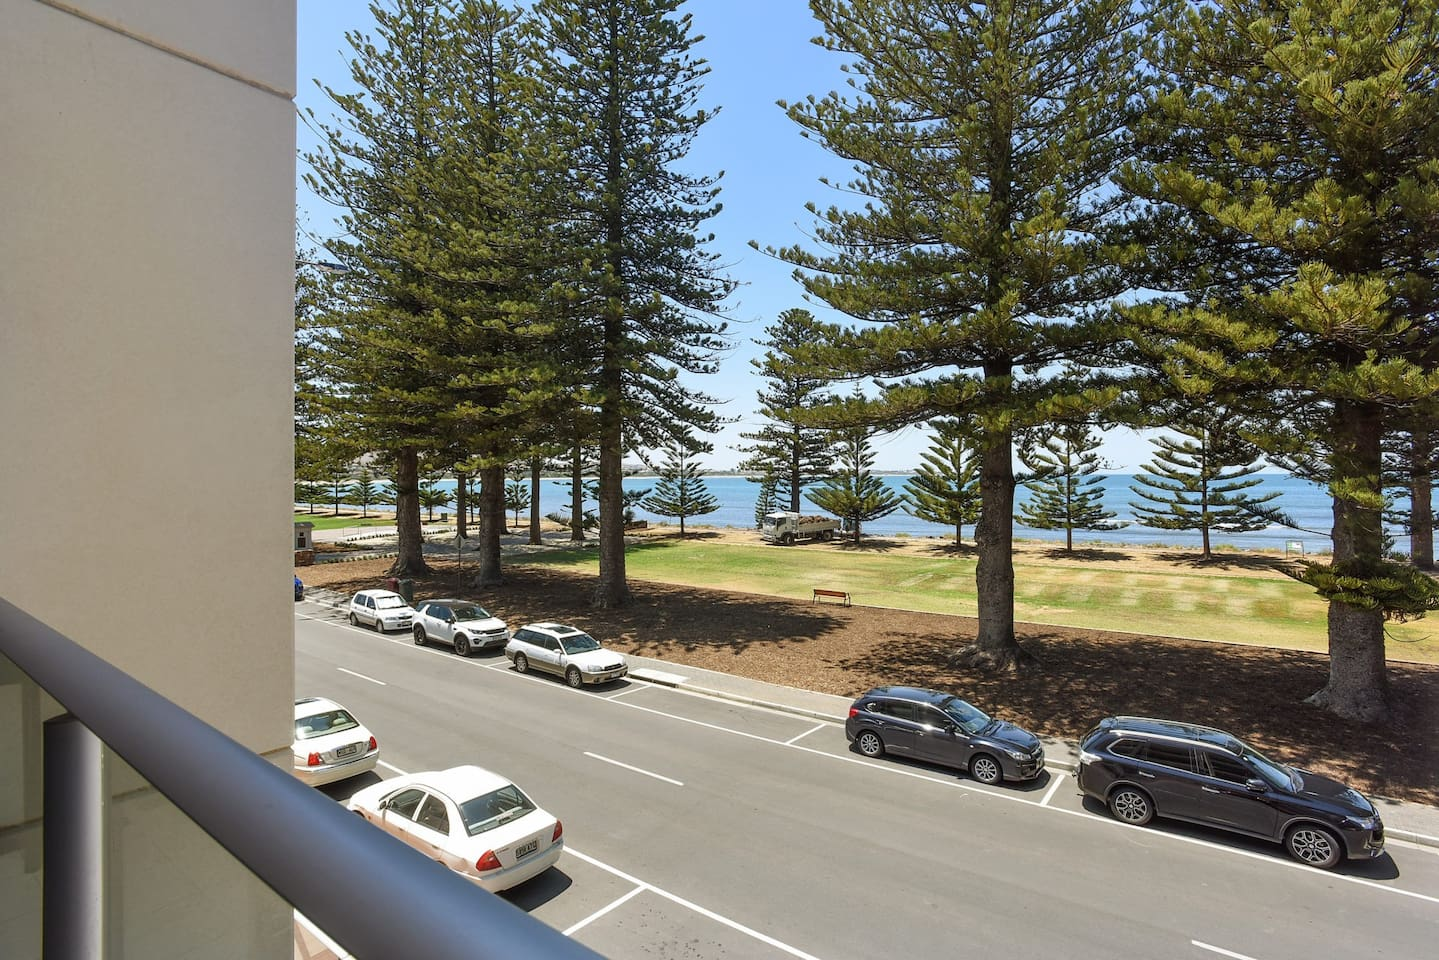 16 The Breeze - Sea Views Right in the Heart of Victor Harbor